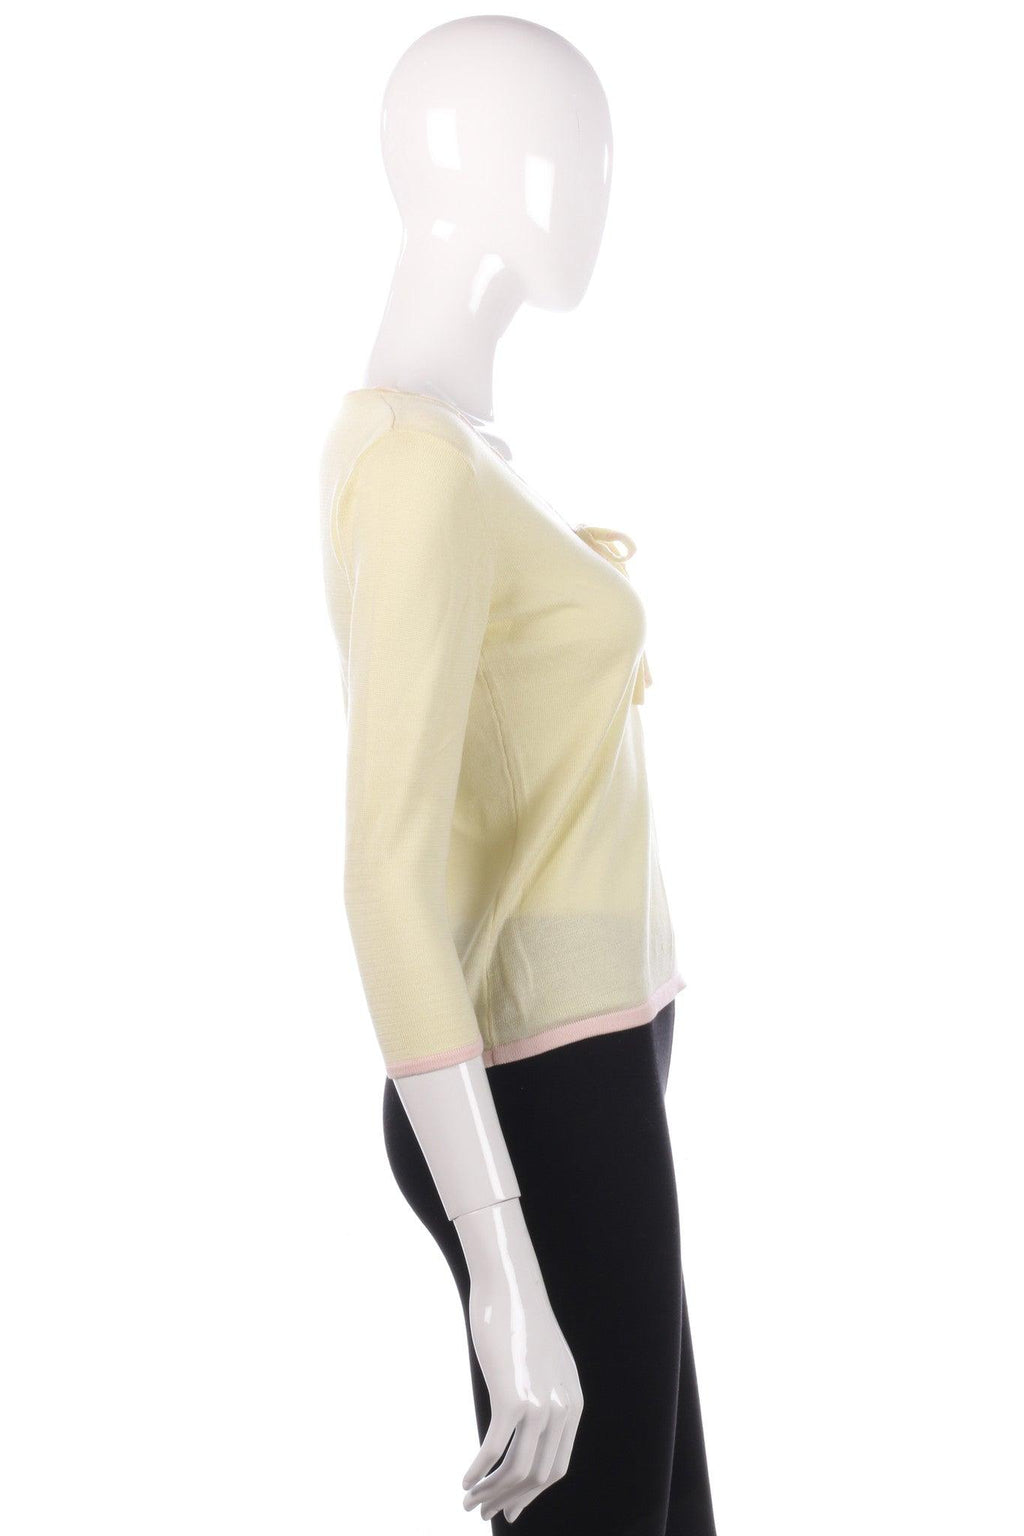 Paul Costello Dressage yellow top size 8/10 side